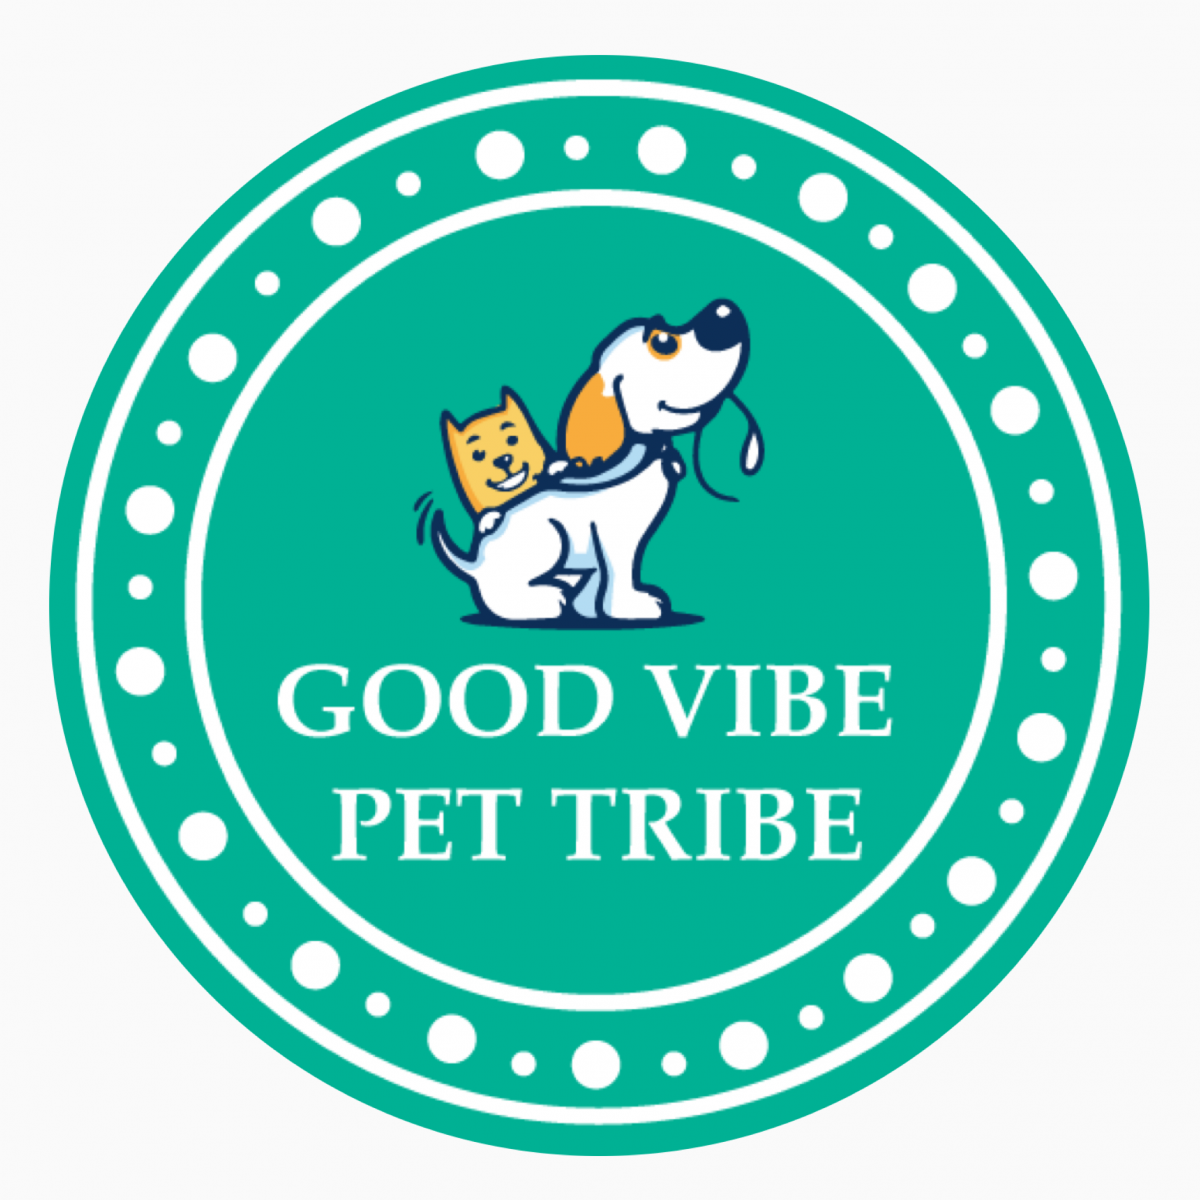 Good Vibe Pet Tribe